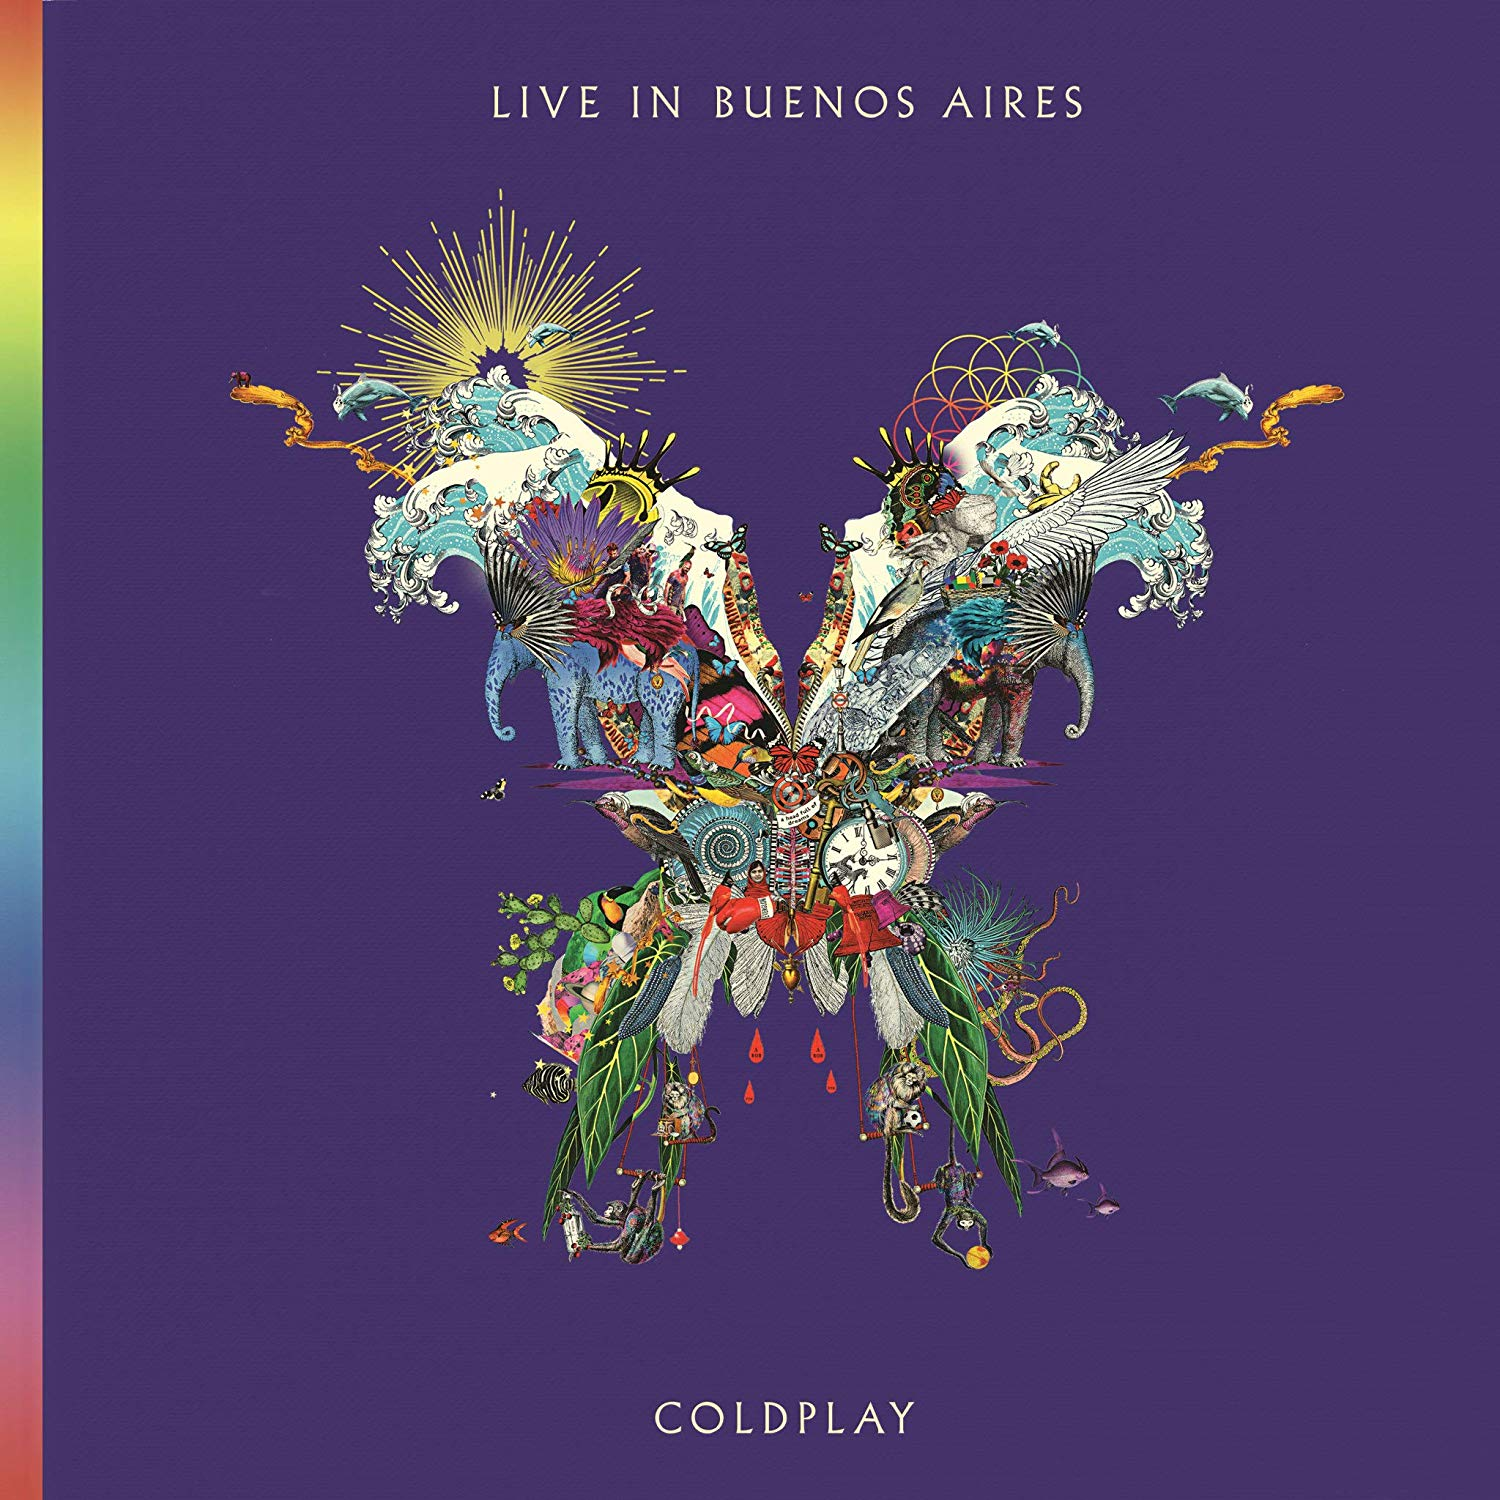 Coldplay Live in Buenos Aires album cover